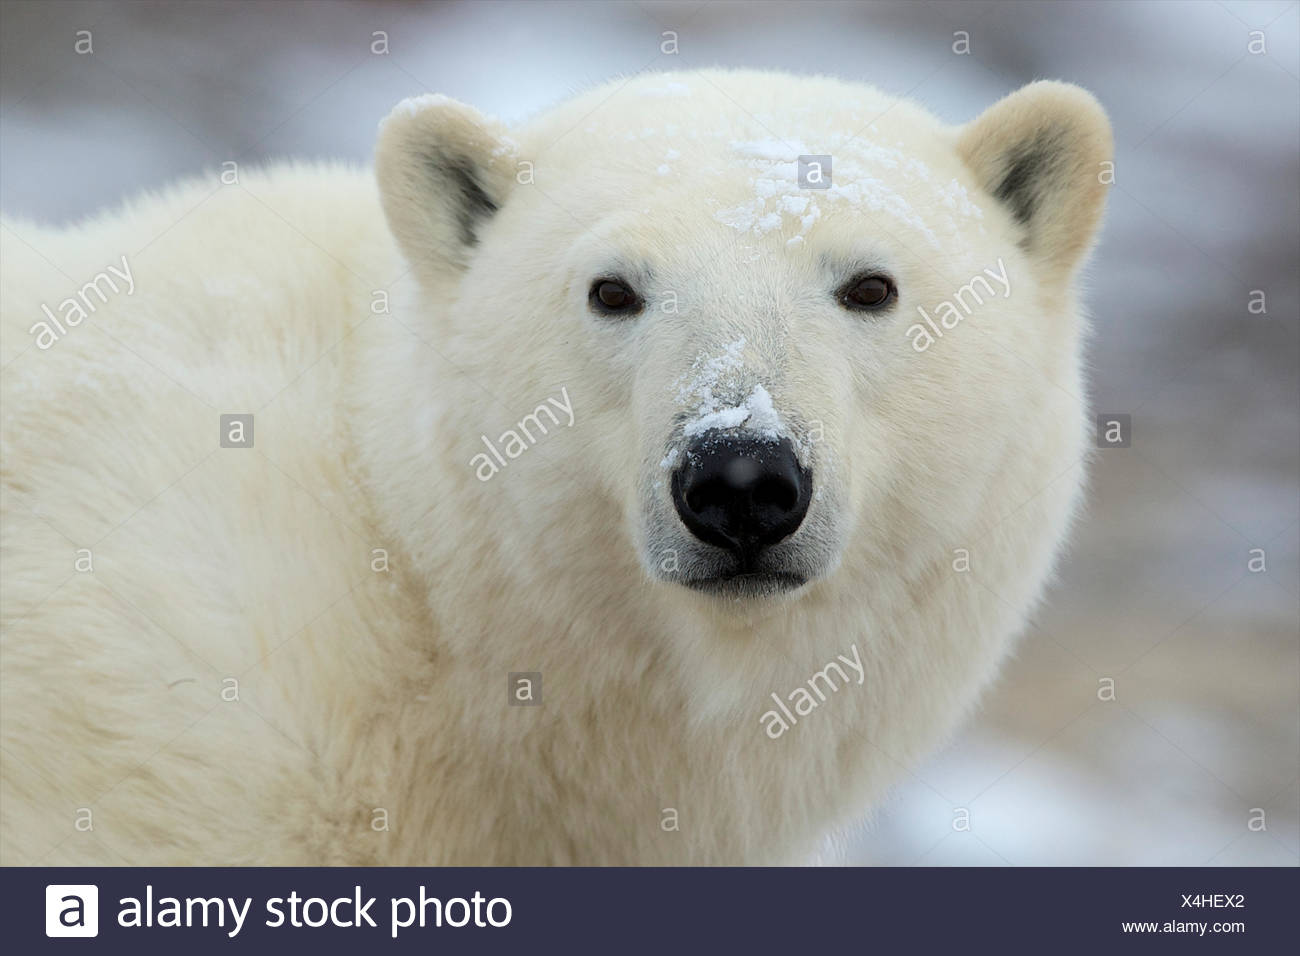 The look of a polar bear trying to decide where to go next. - Stock Image